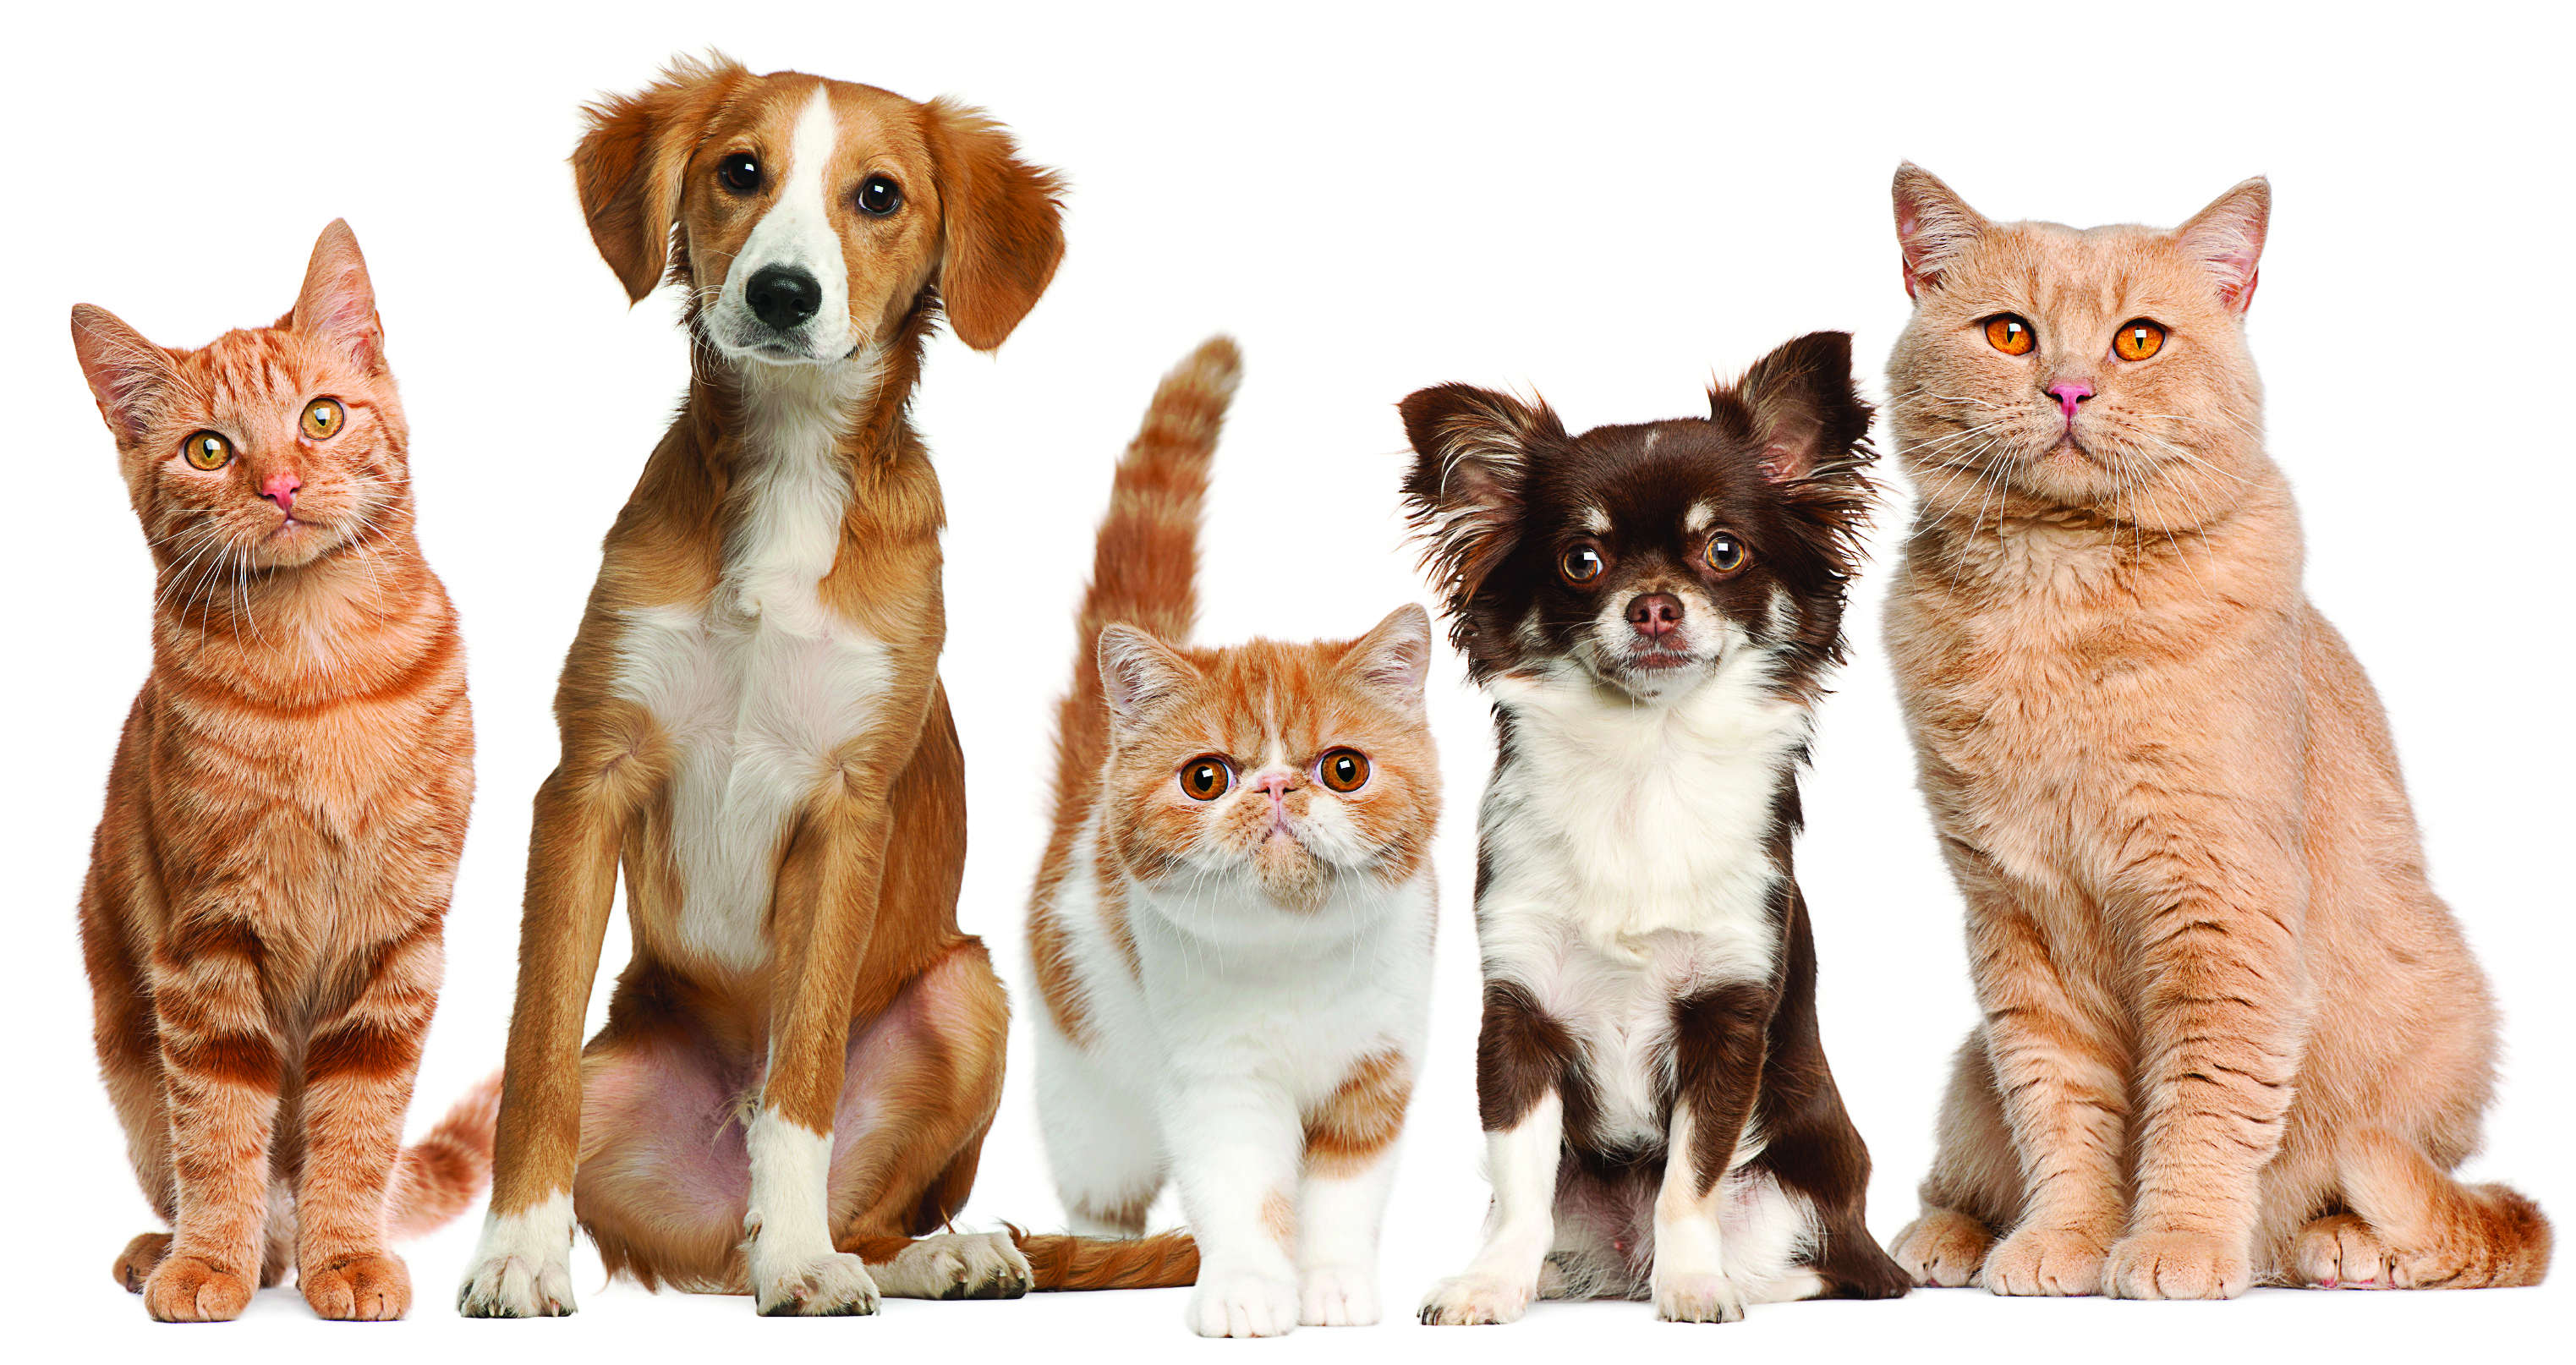 Are Cats Related To Dogs